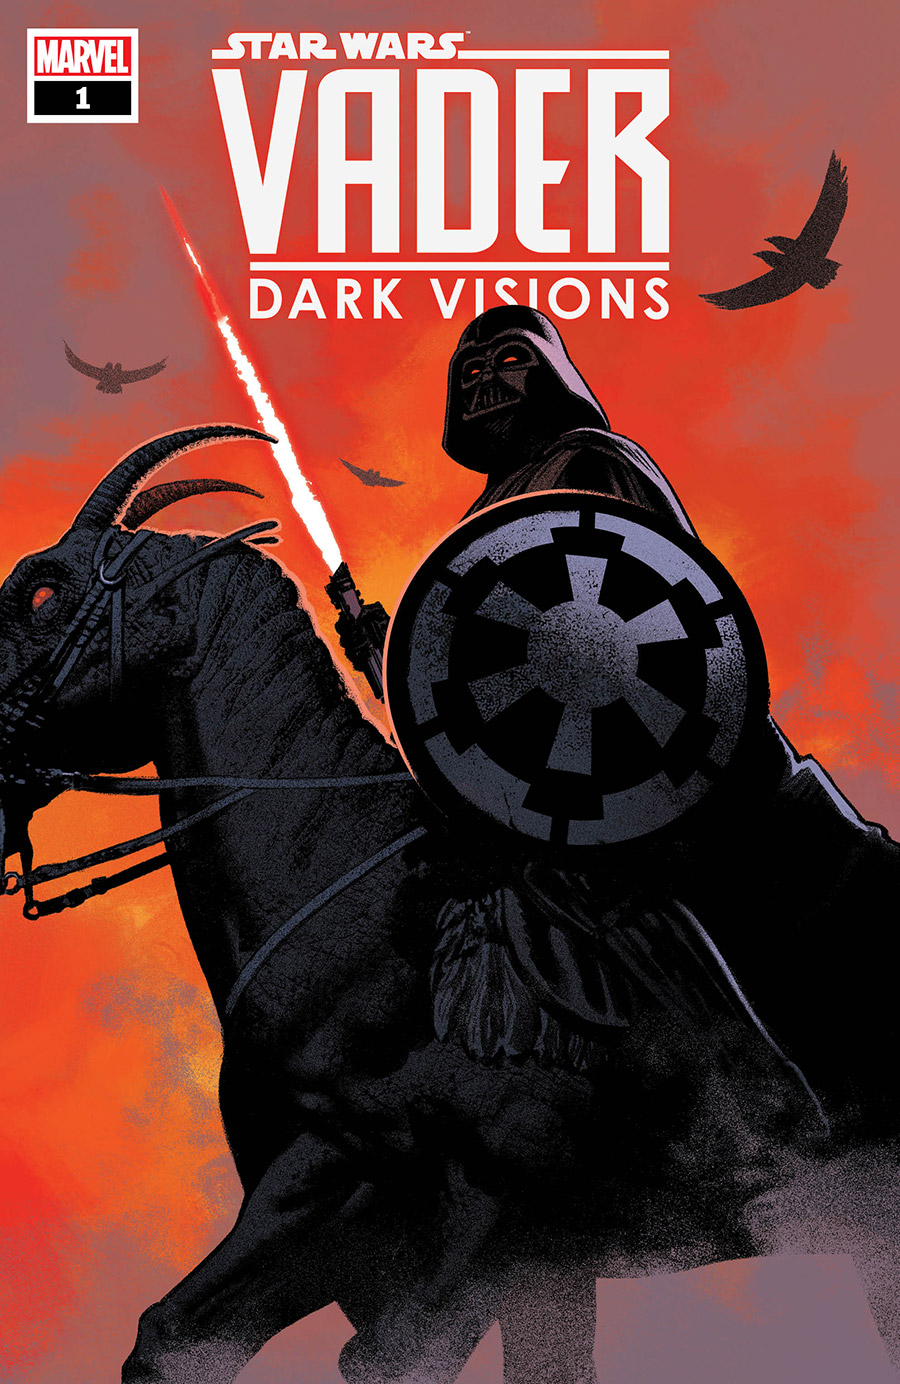 The cover of Vader - Dark Visions issue 1.